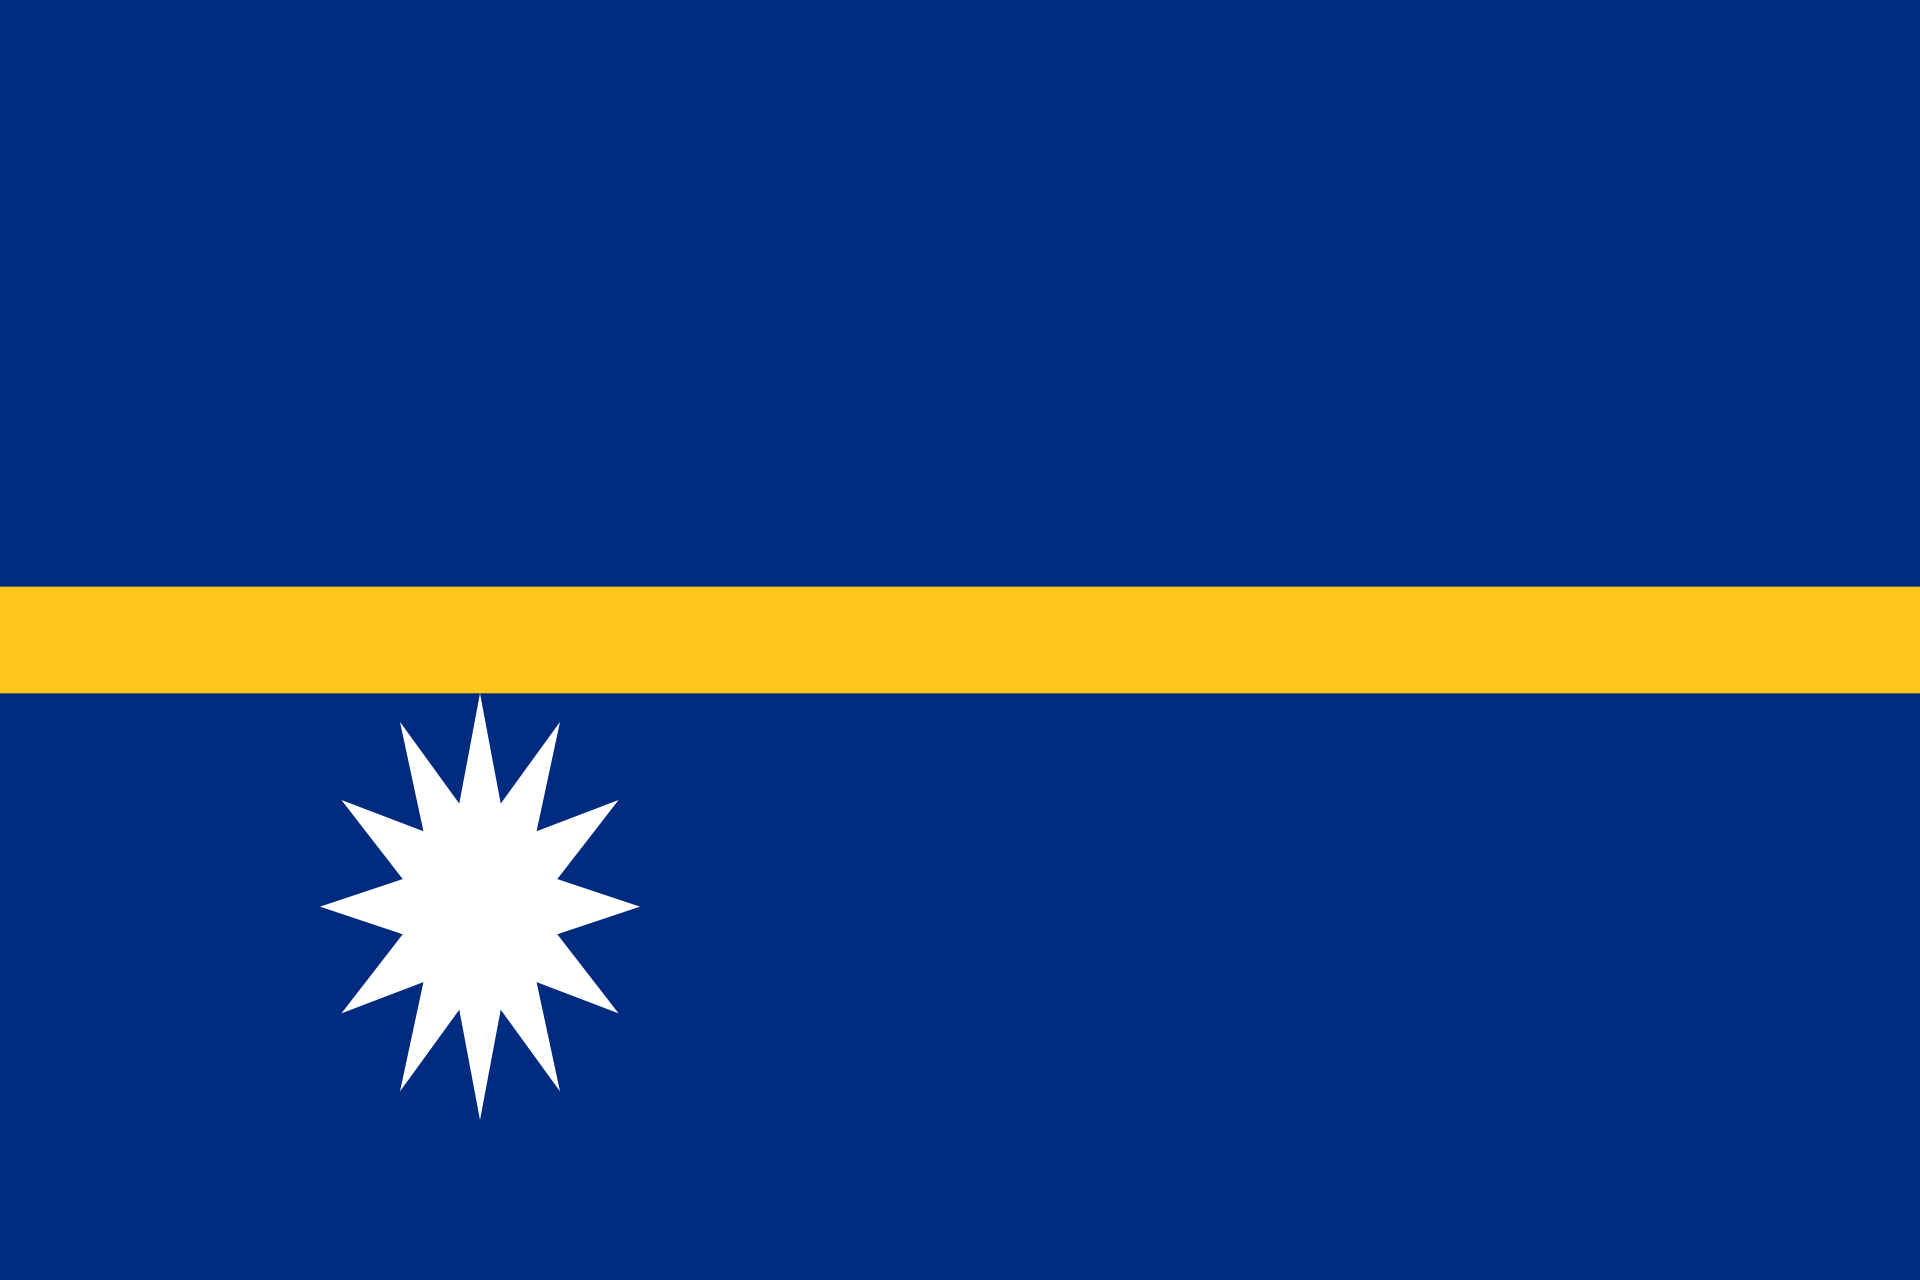 Pin By Coingebra On International Flags Pro Nauru Flag Flags Of The World National Flag